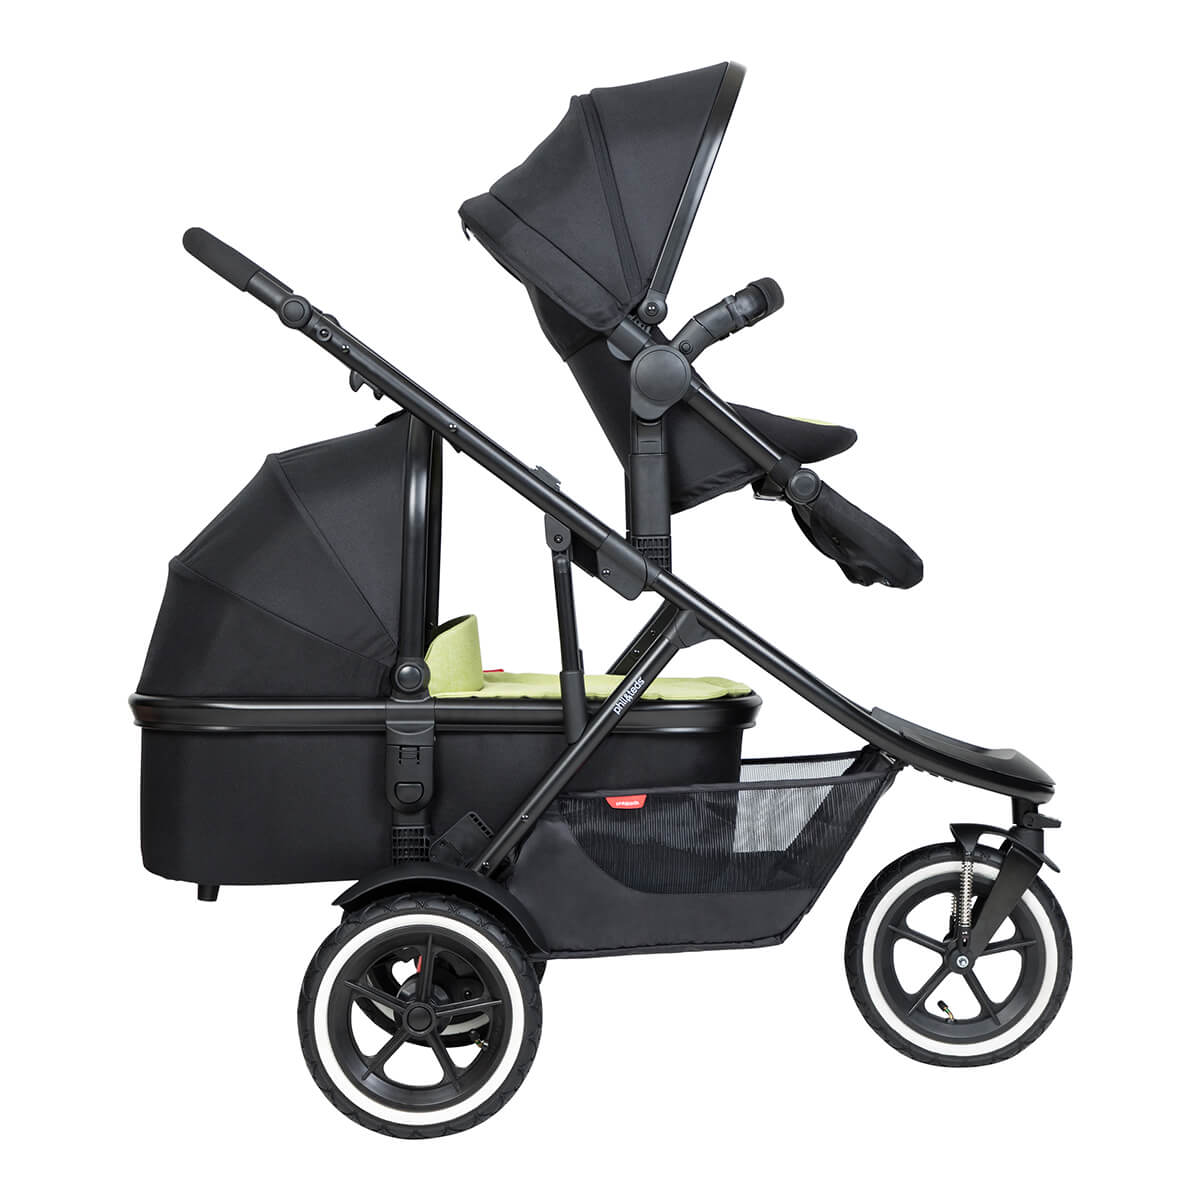 https://cdn.accentuate.io/4546158133353/19119322726505/philteds-sport-buggy-with-double-kit-extended-clip-and-snug-carrycot-side-view-v1625778404548.jpg?1200x1200